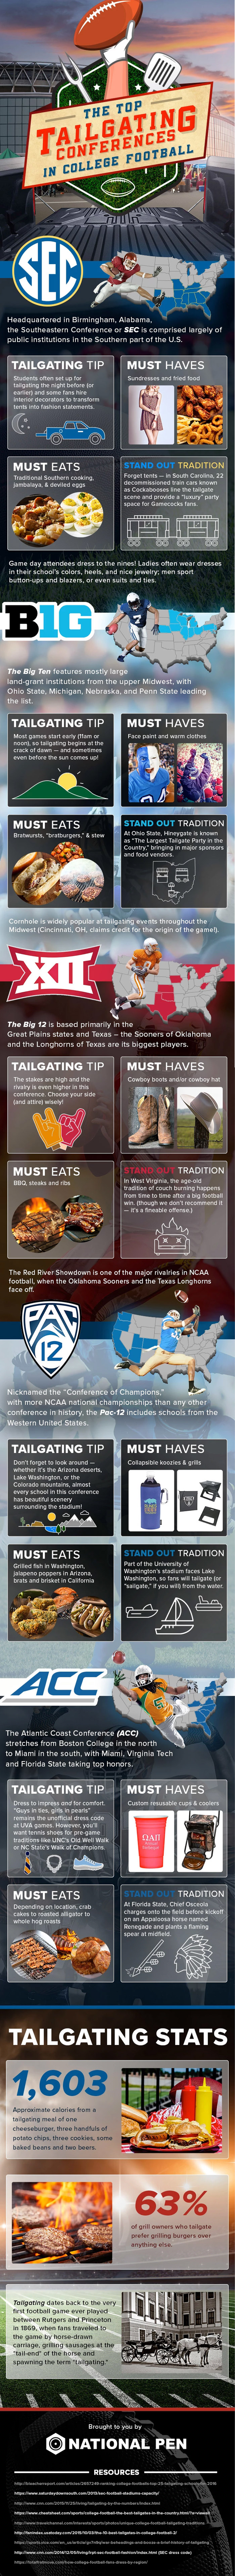 college-football-tailgating-infographic